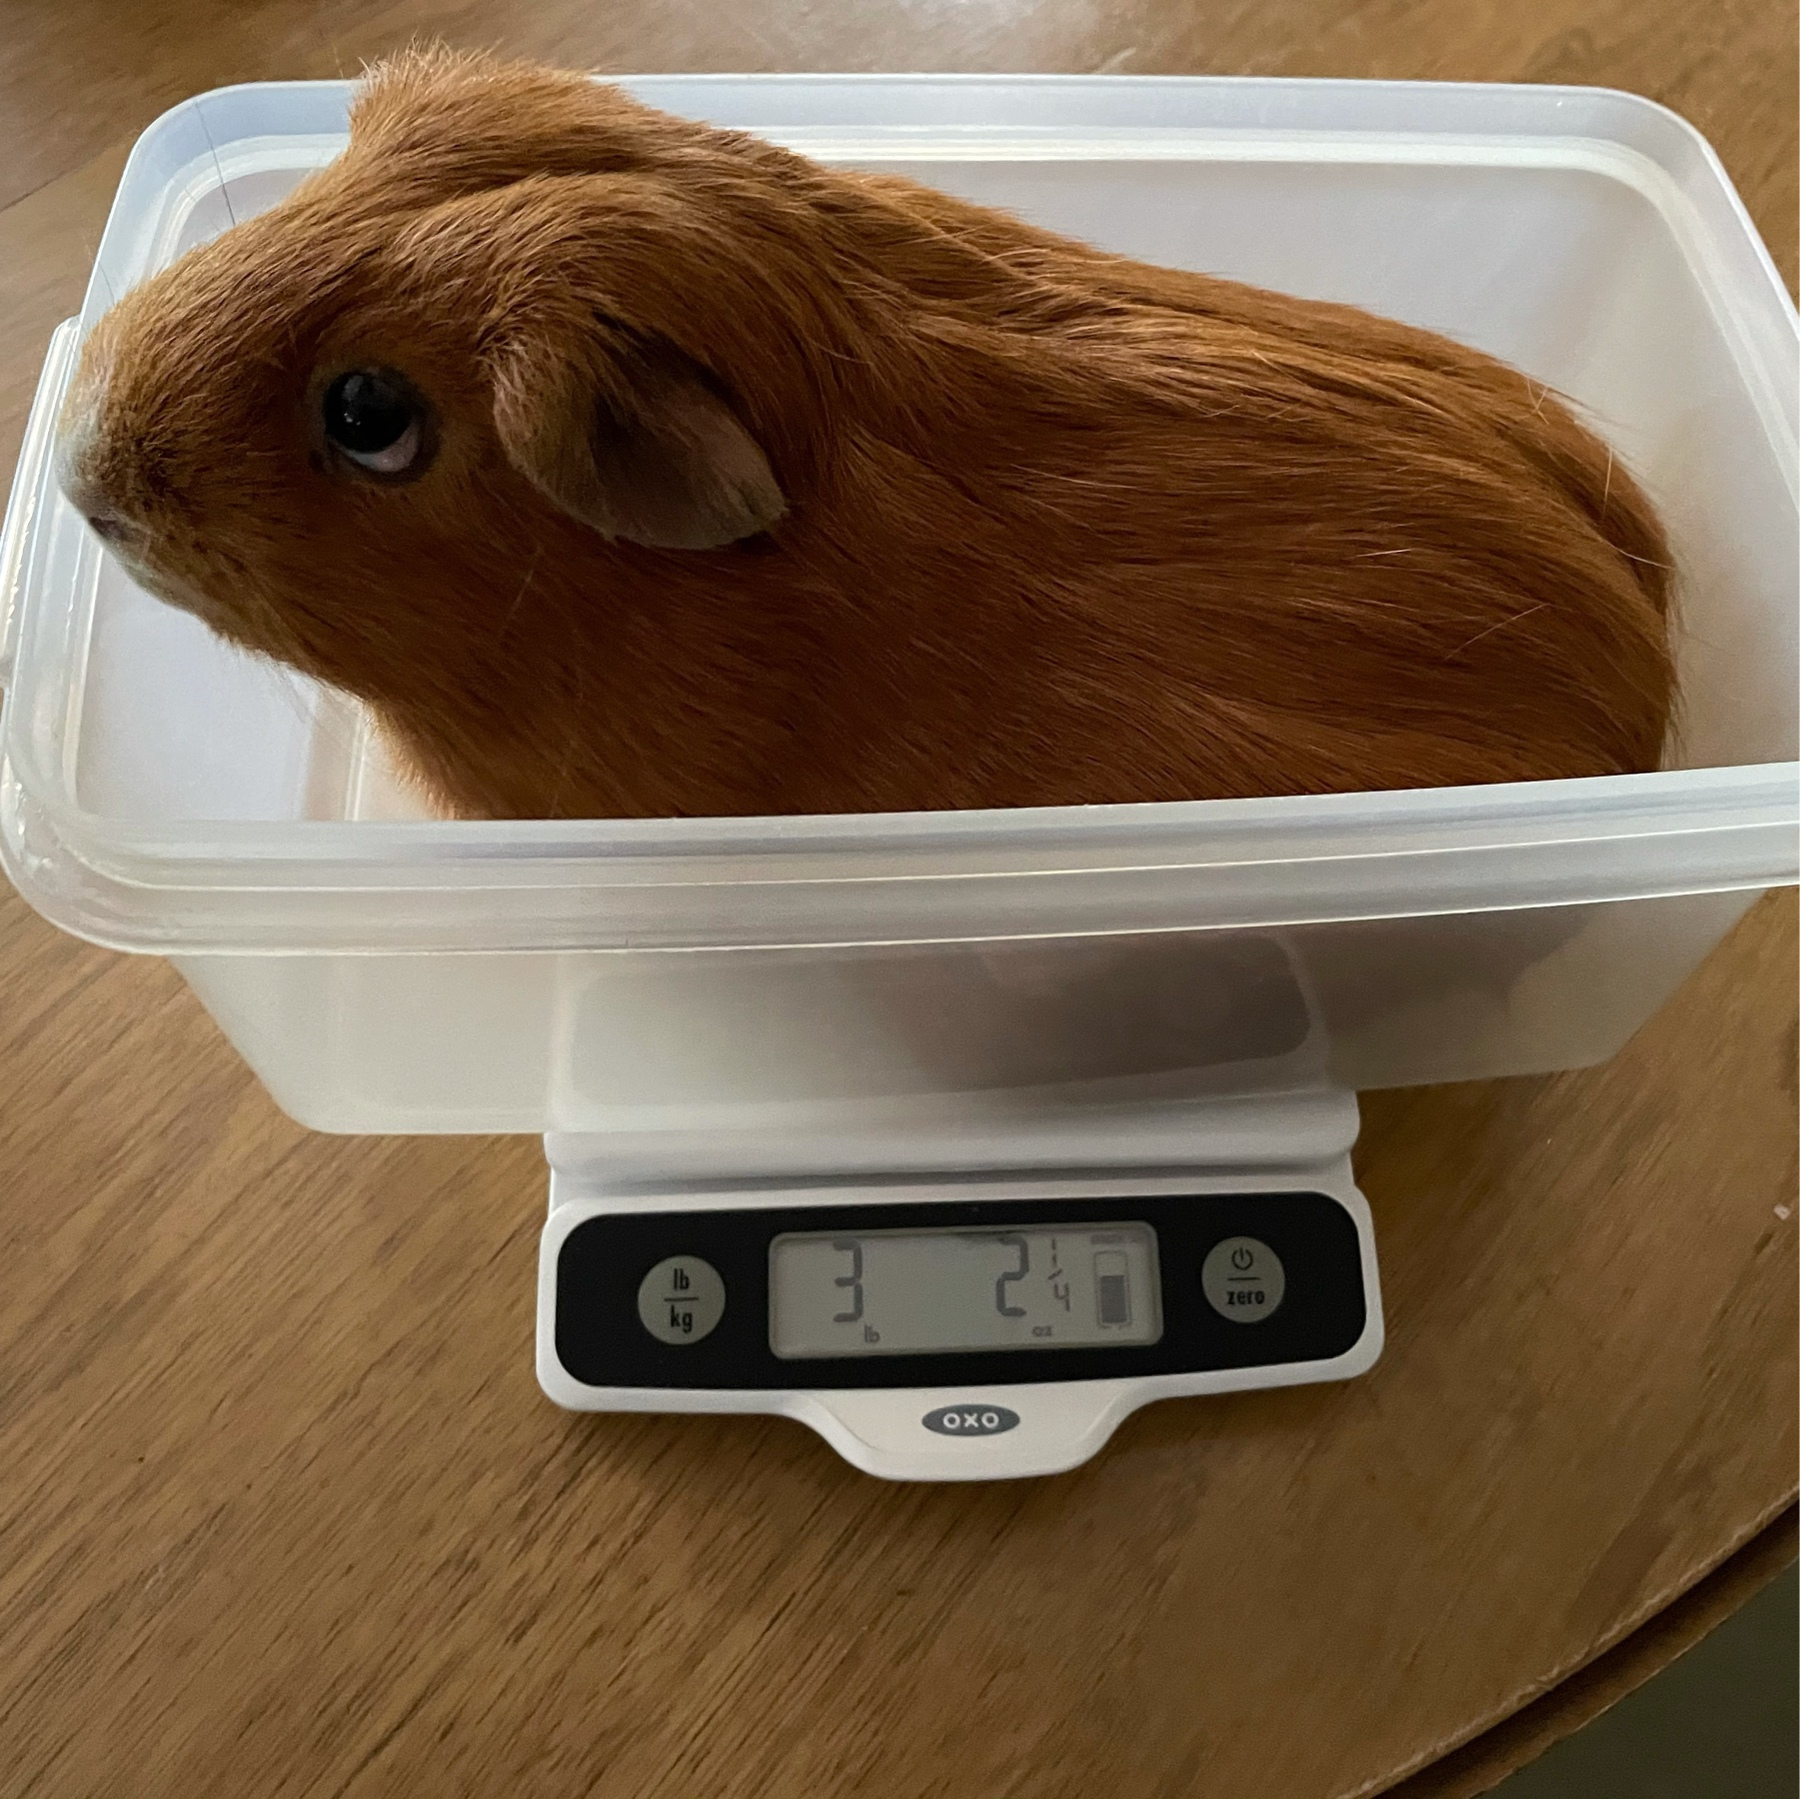 Large orange guinea pig on kitcen scale. No one likes being weighed.